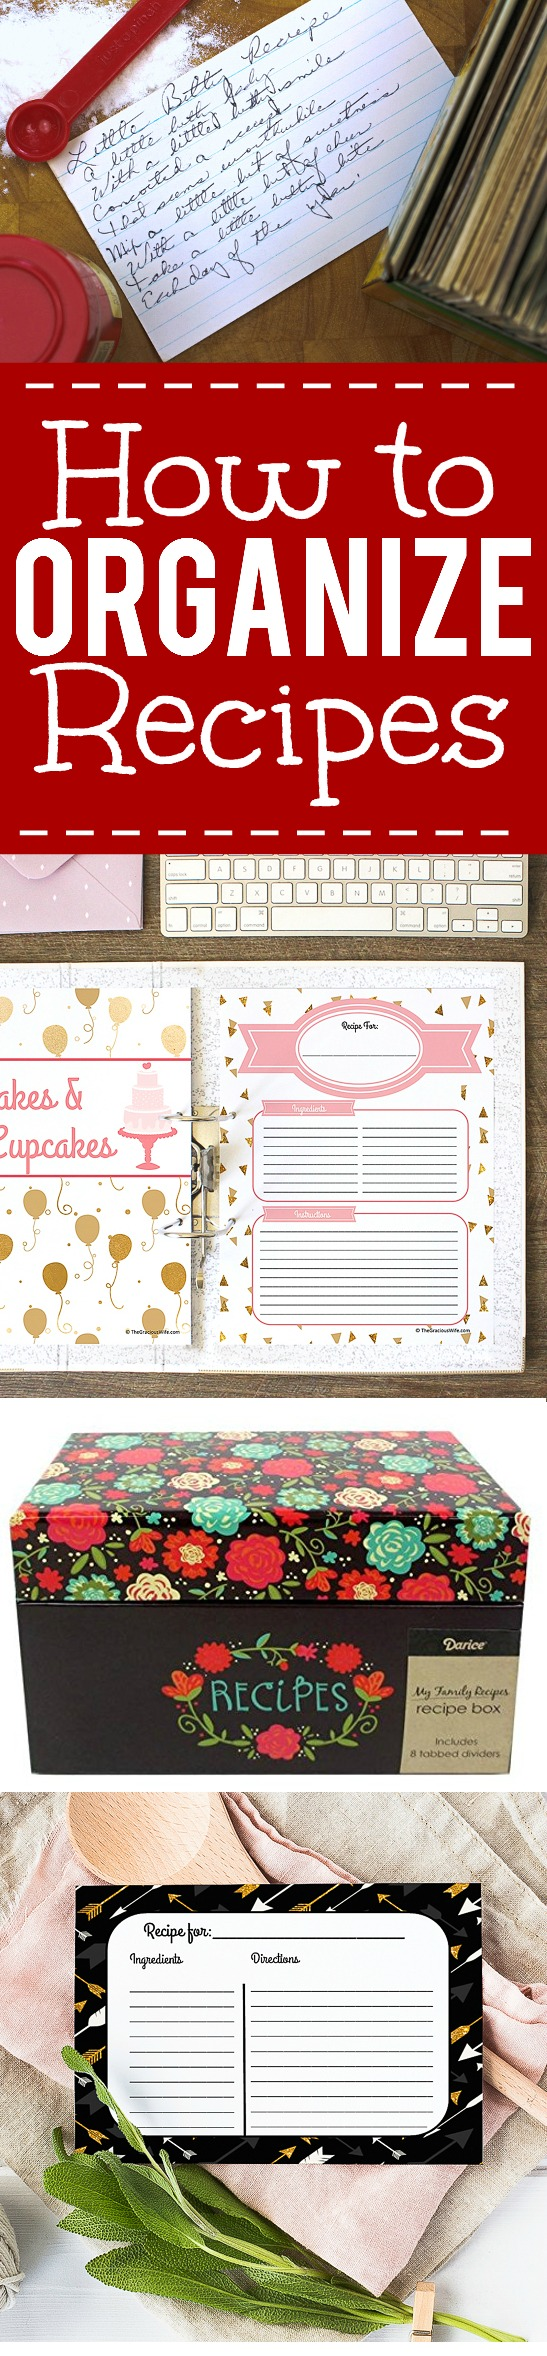 How to Organize Recipes with 10 easy tips and tricks -Make sure you can always find the recipe you need! Learn your own favorite recipe organization tricks with these 10 easy ways to organize recipes! | organization